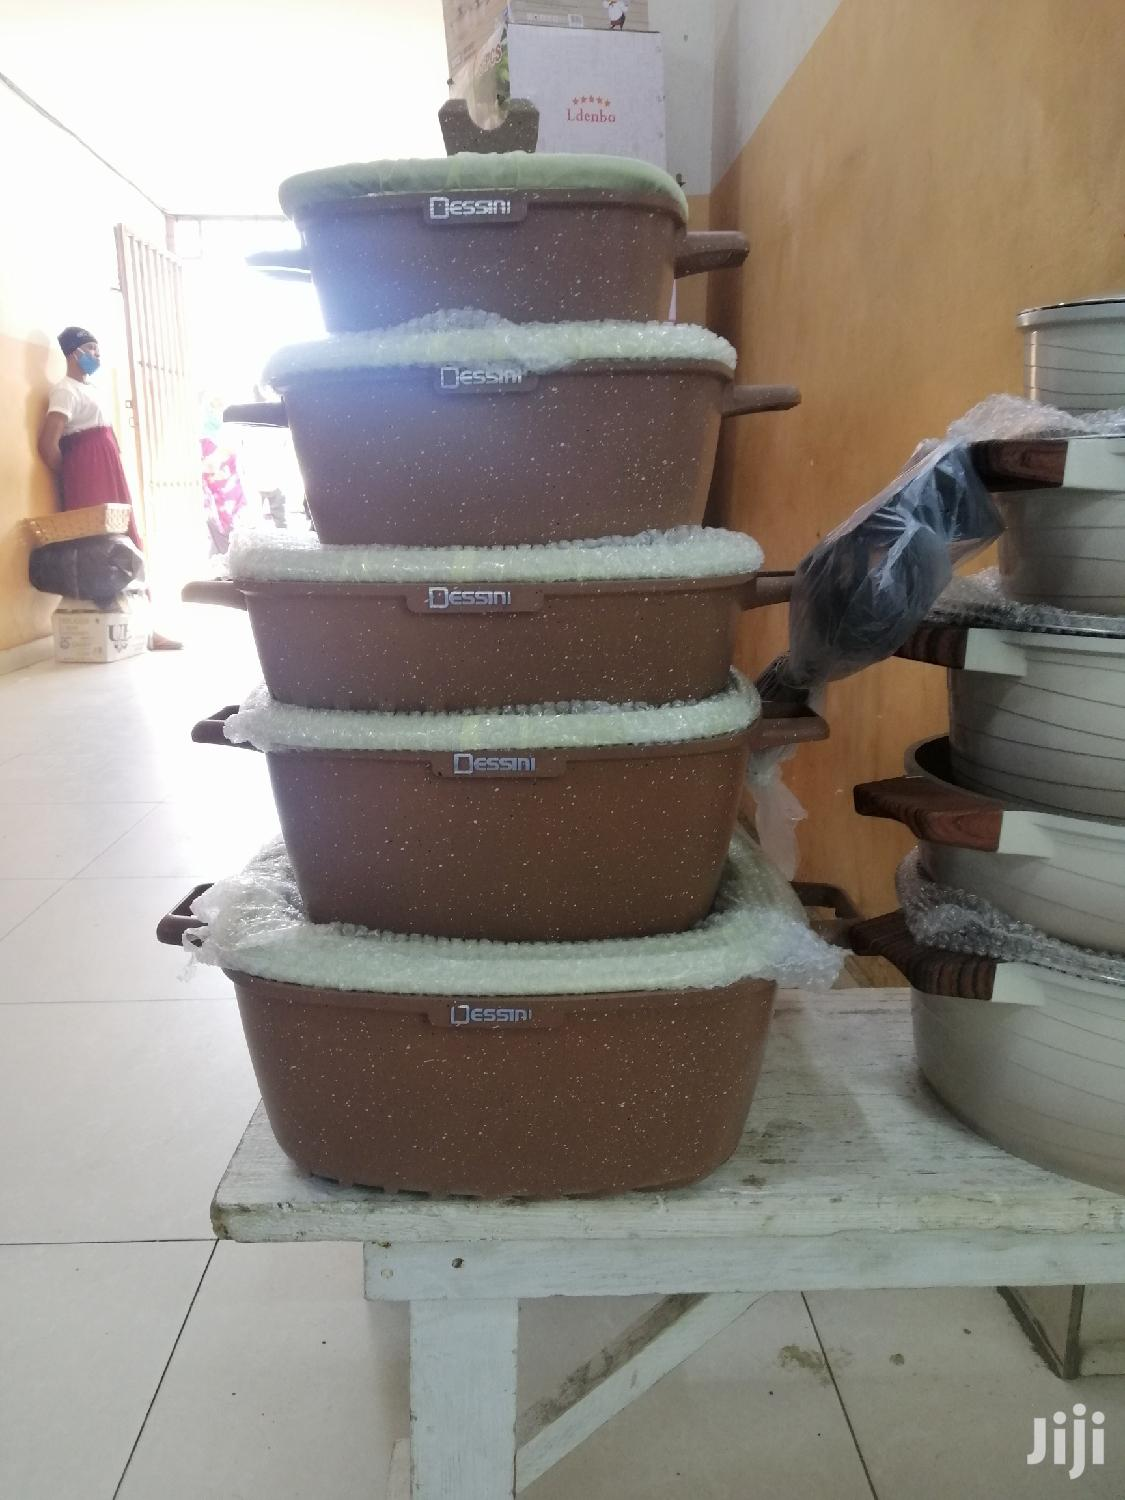 Dessini Non-stick Cooking Set | Kitchen & Dining for sale in Achimota, Greater Accra, Ghana